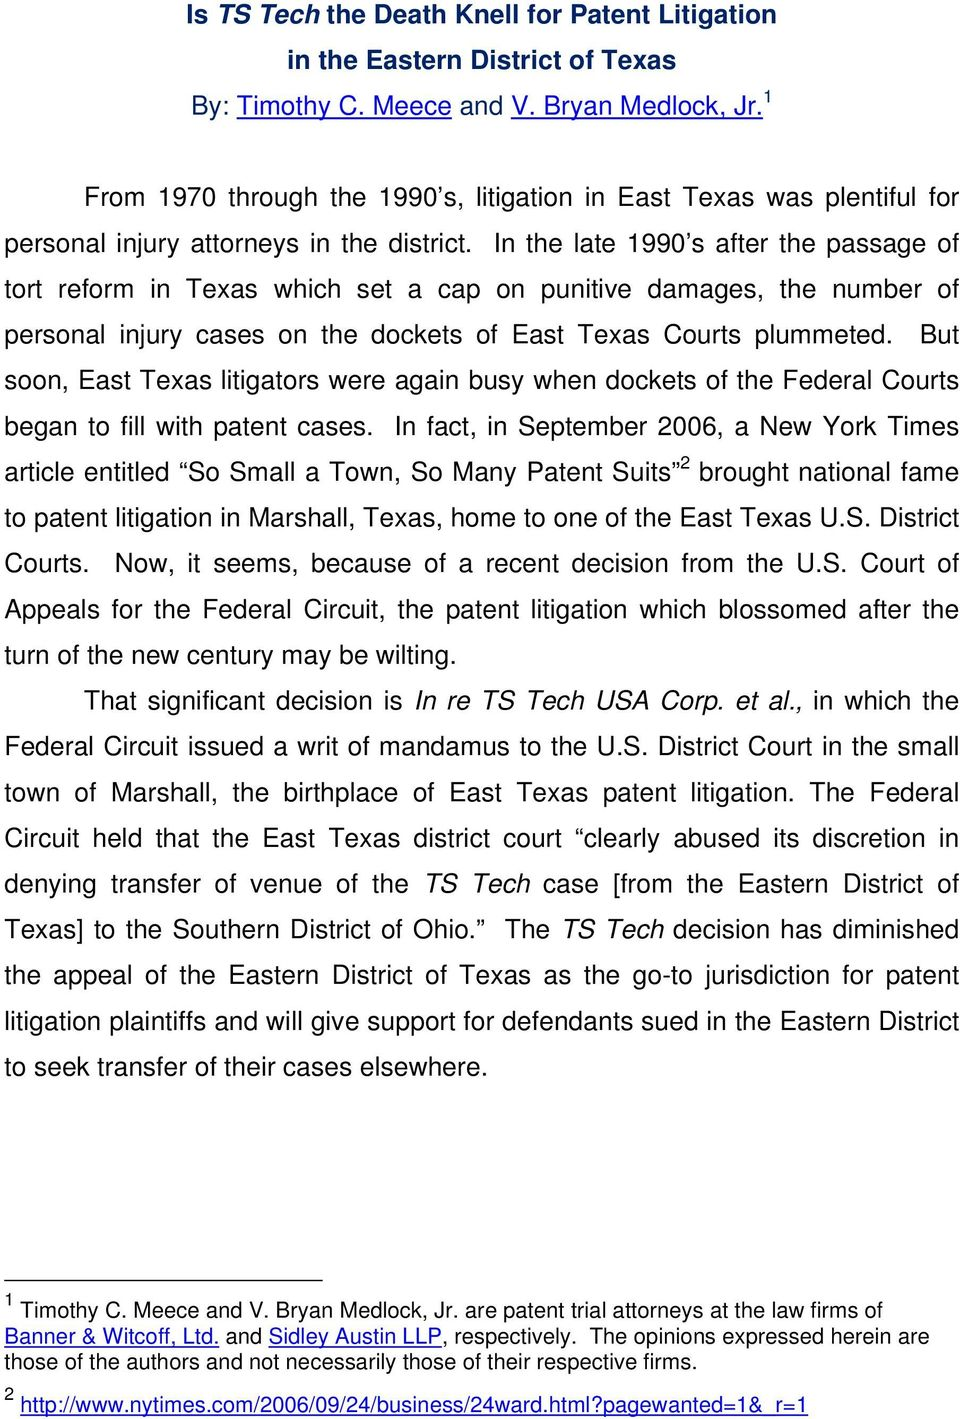 In the late 1990 s after the passage of tort reform in Texas which set a cap on punitive damages, the number of personal injury cases on the dockets of East Texas Courts plummeted.